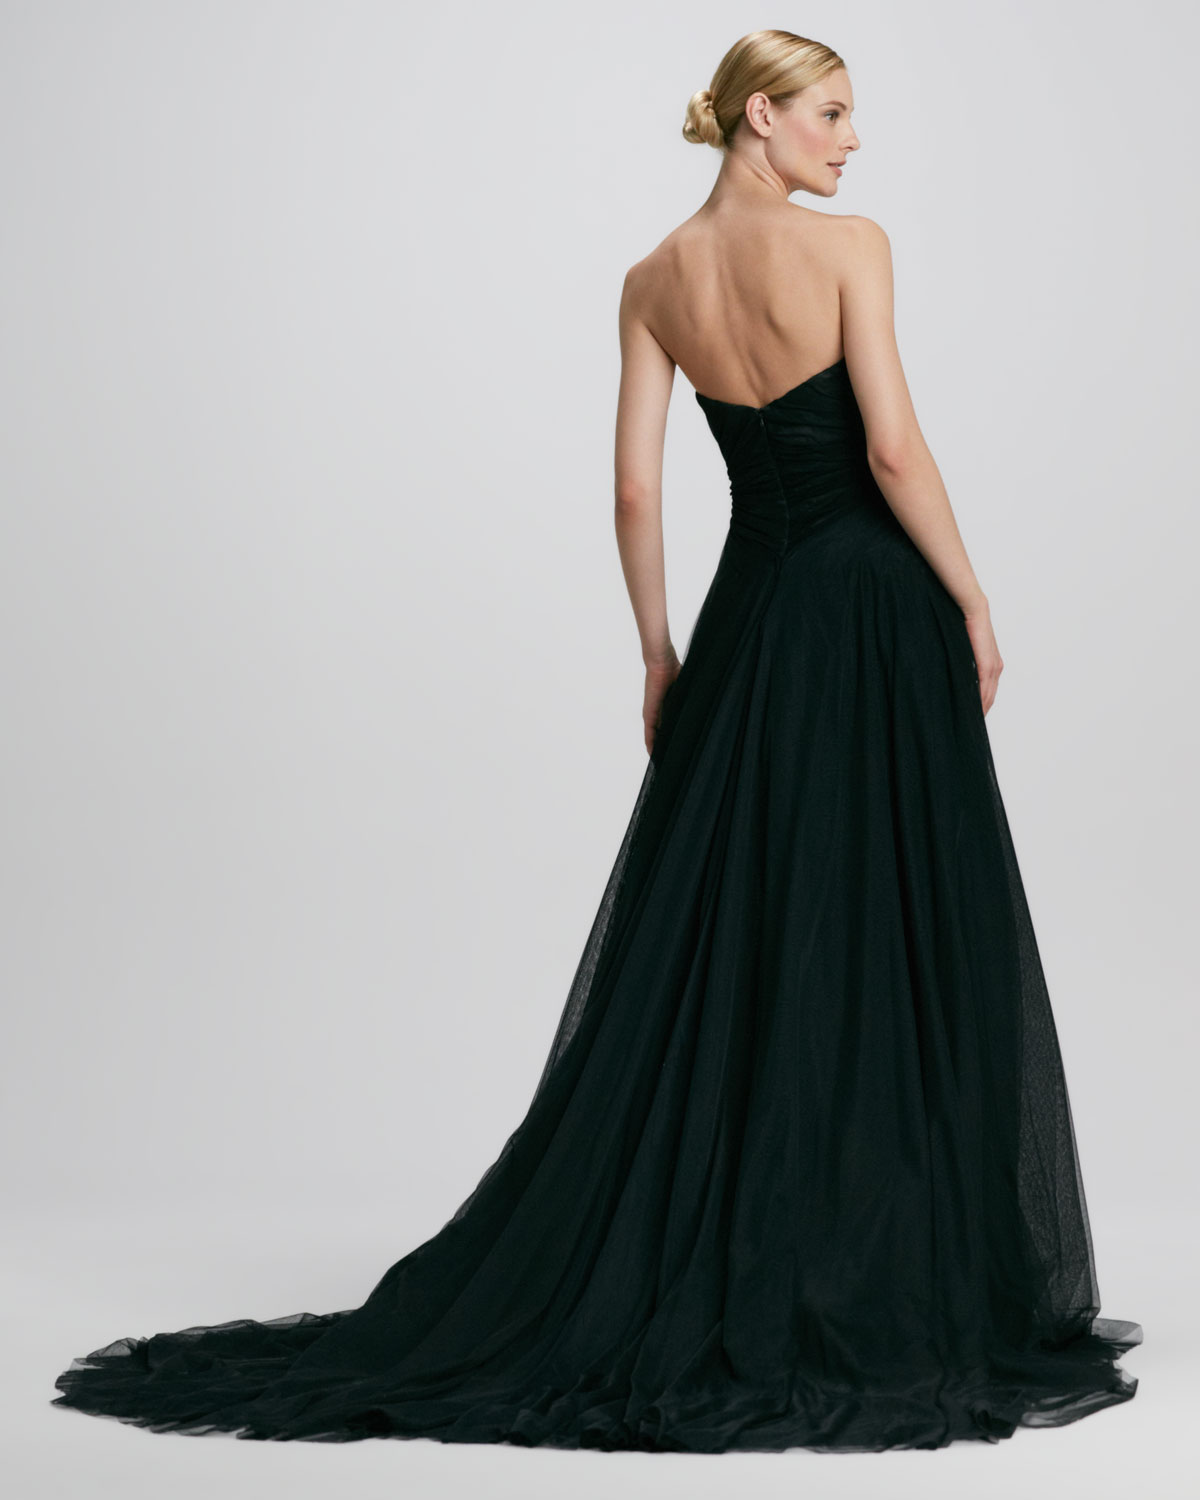 Pamella roland Strapless Embroidered Ball Gown in Black | Lyst